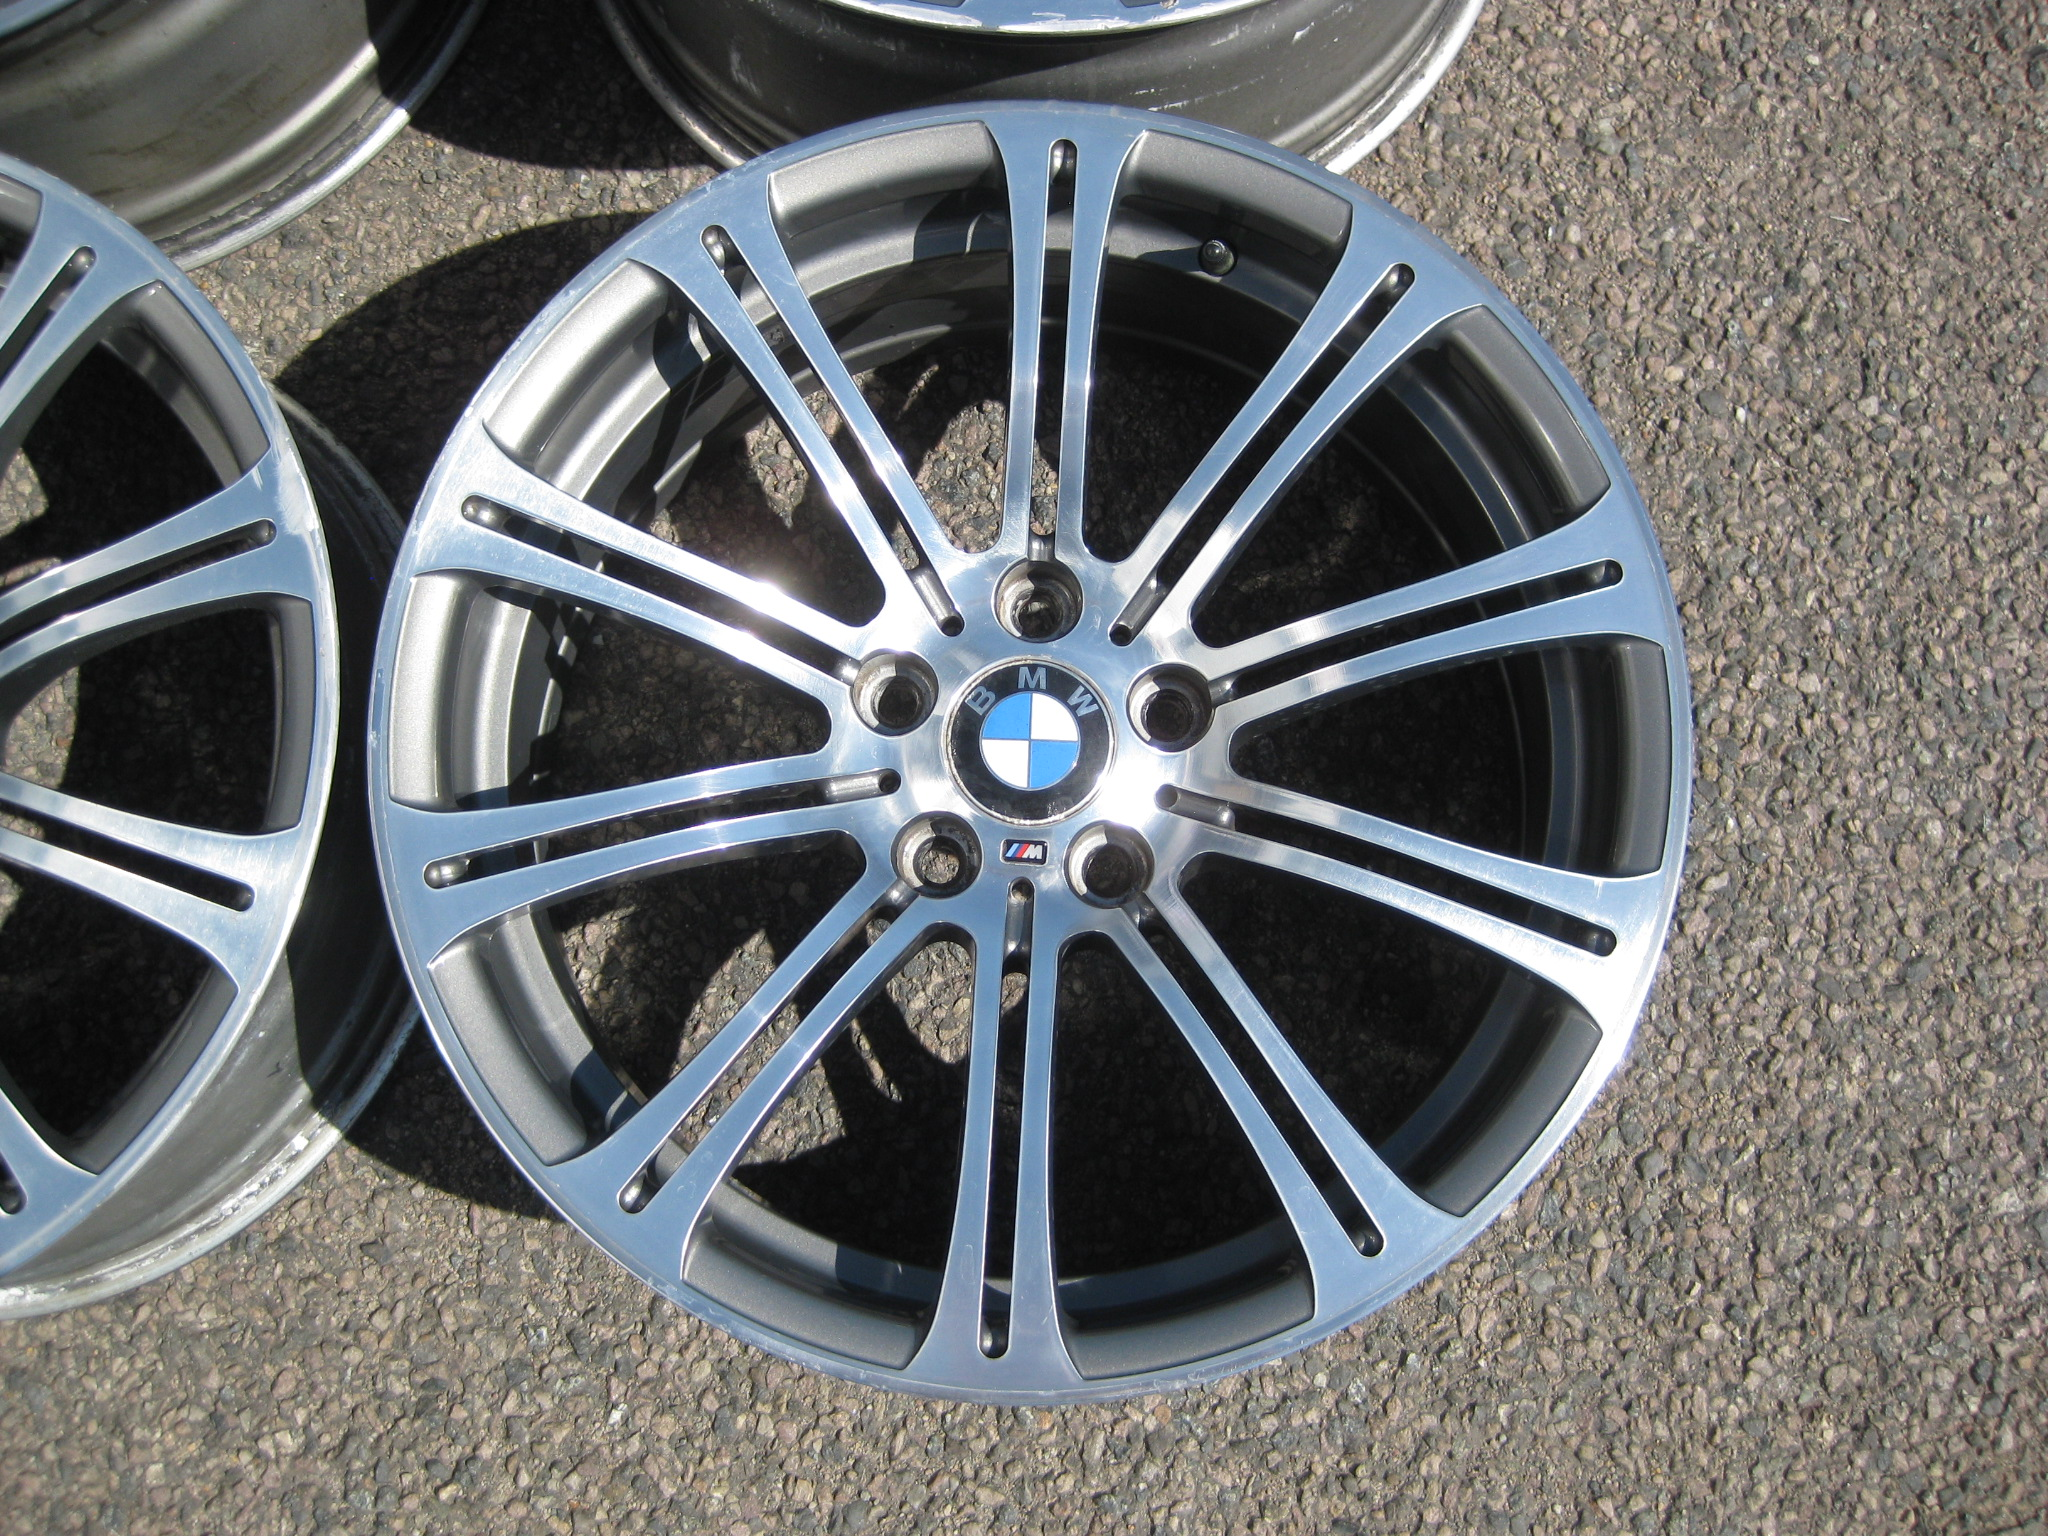 "USED 19"" GENUINE BMW STYLE 220 E92 M3 POLISHED FORGED ALLOY WHEELS, WIDE REAR,GOOD ORIGINAL CONDITION"